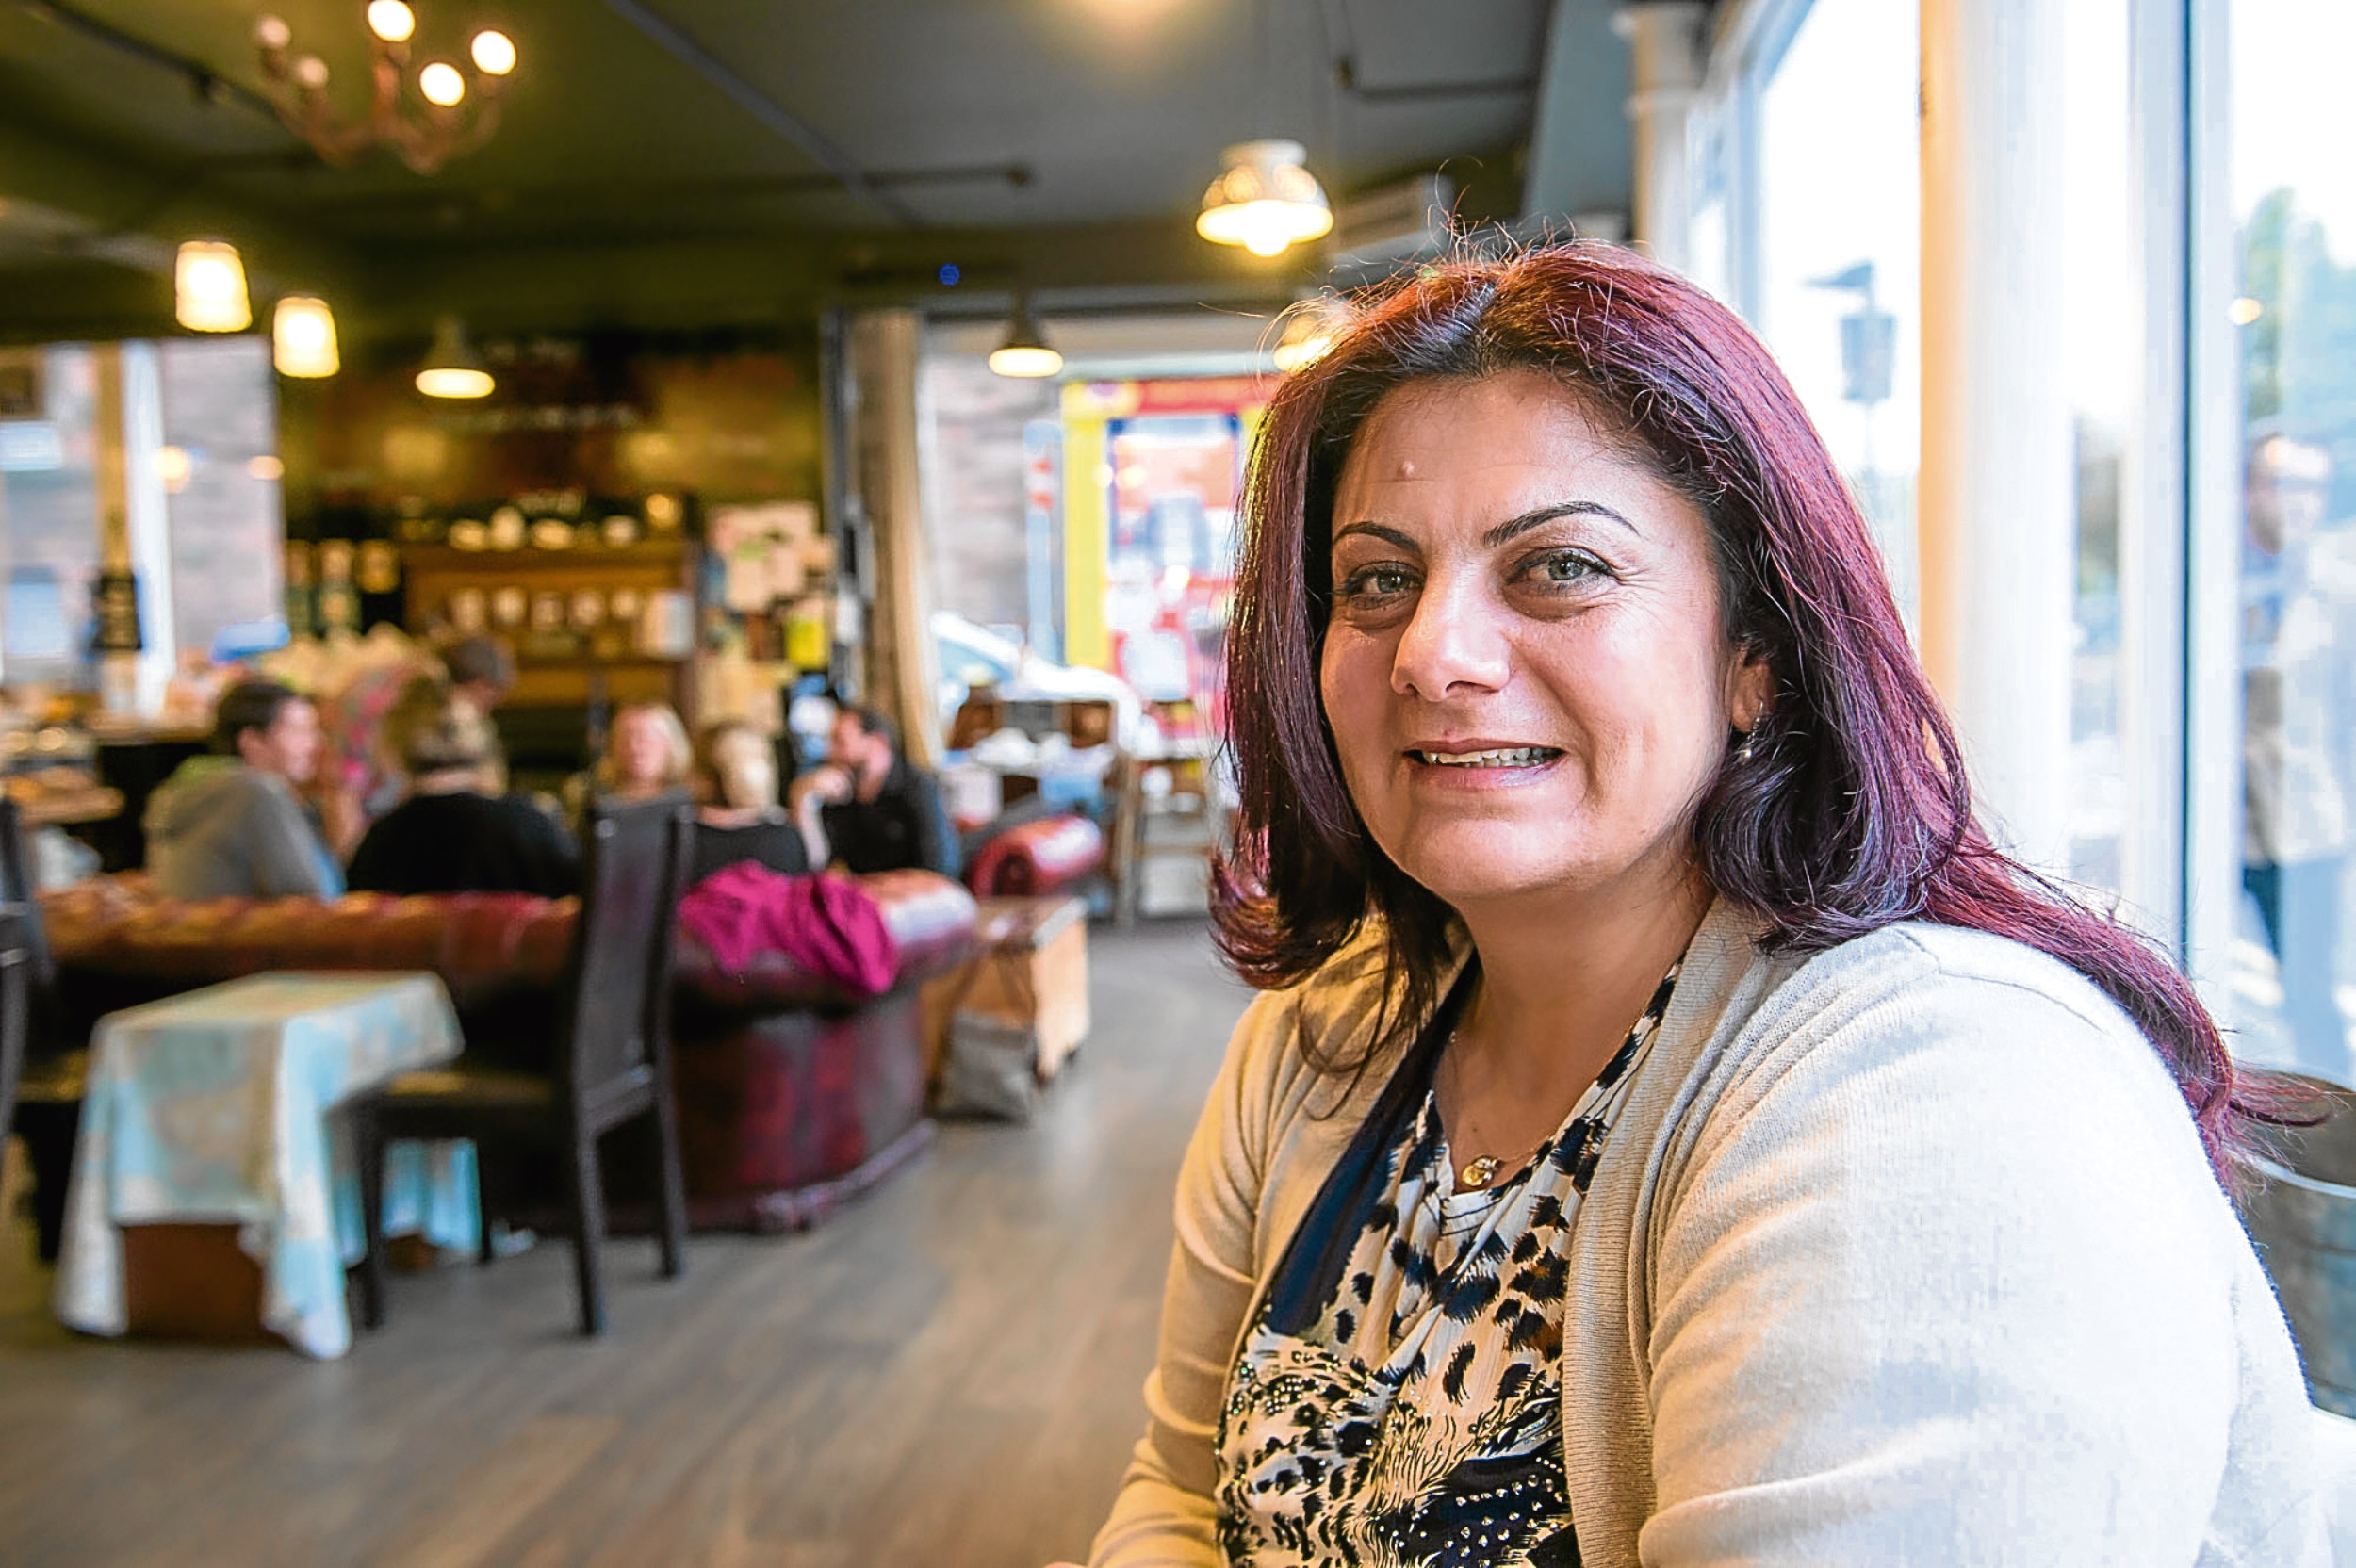 Perth woman Zabieh Shihada Alsamaan in the Fair City Blend coffee house, where the international cafe for foreign nationals holds its meetings.